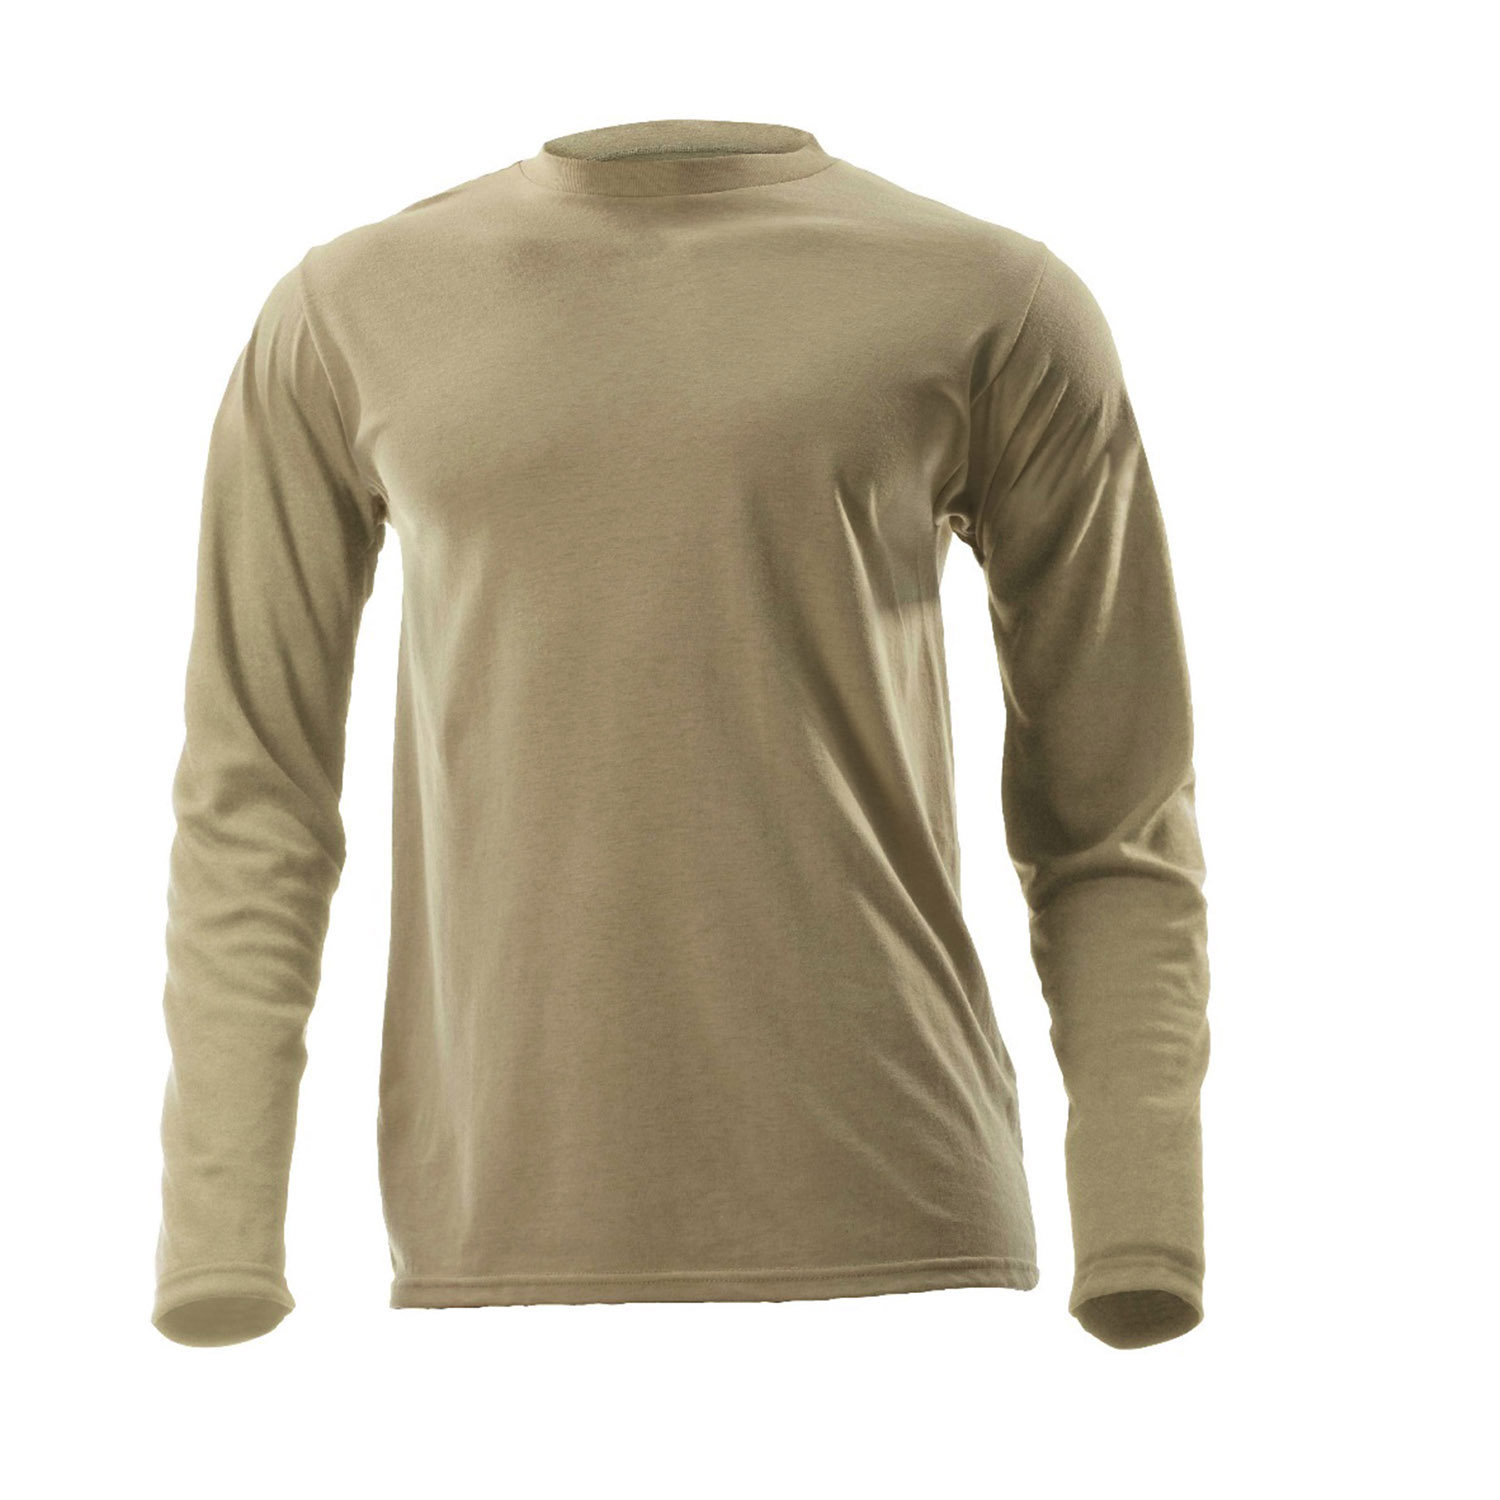 DRIFIRE Lightweight Long-Sleeve Crew